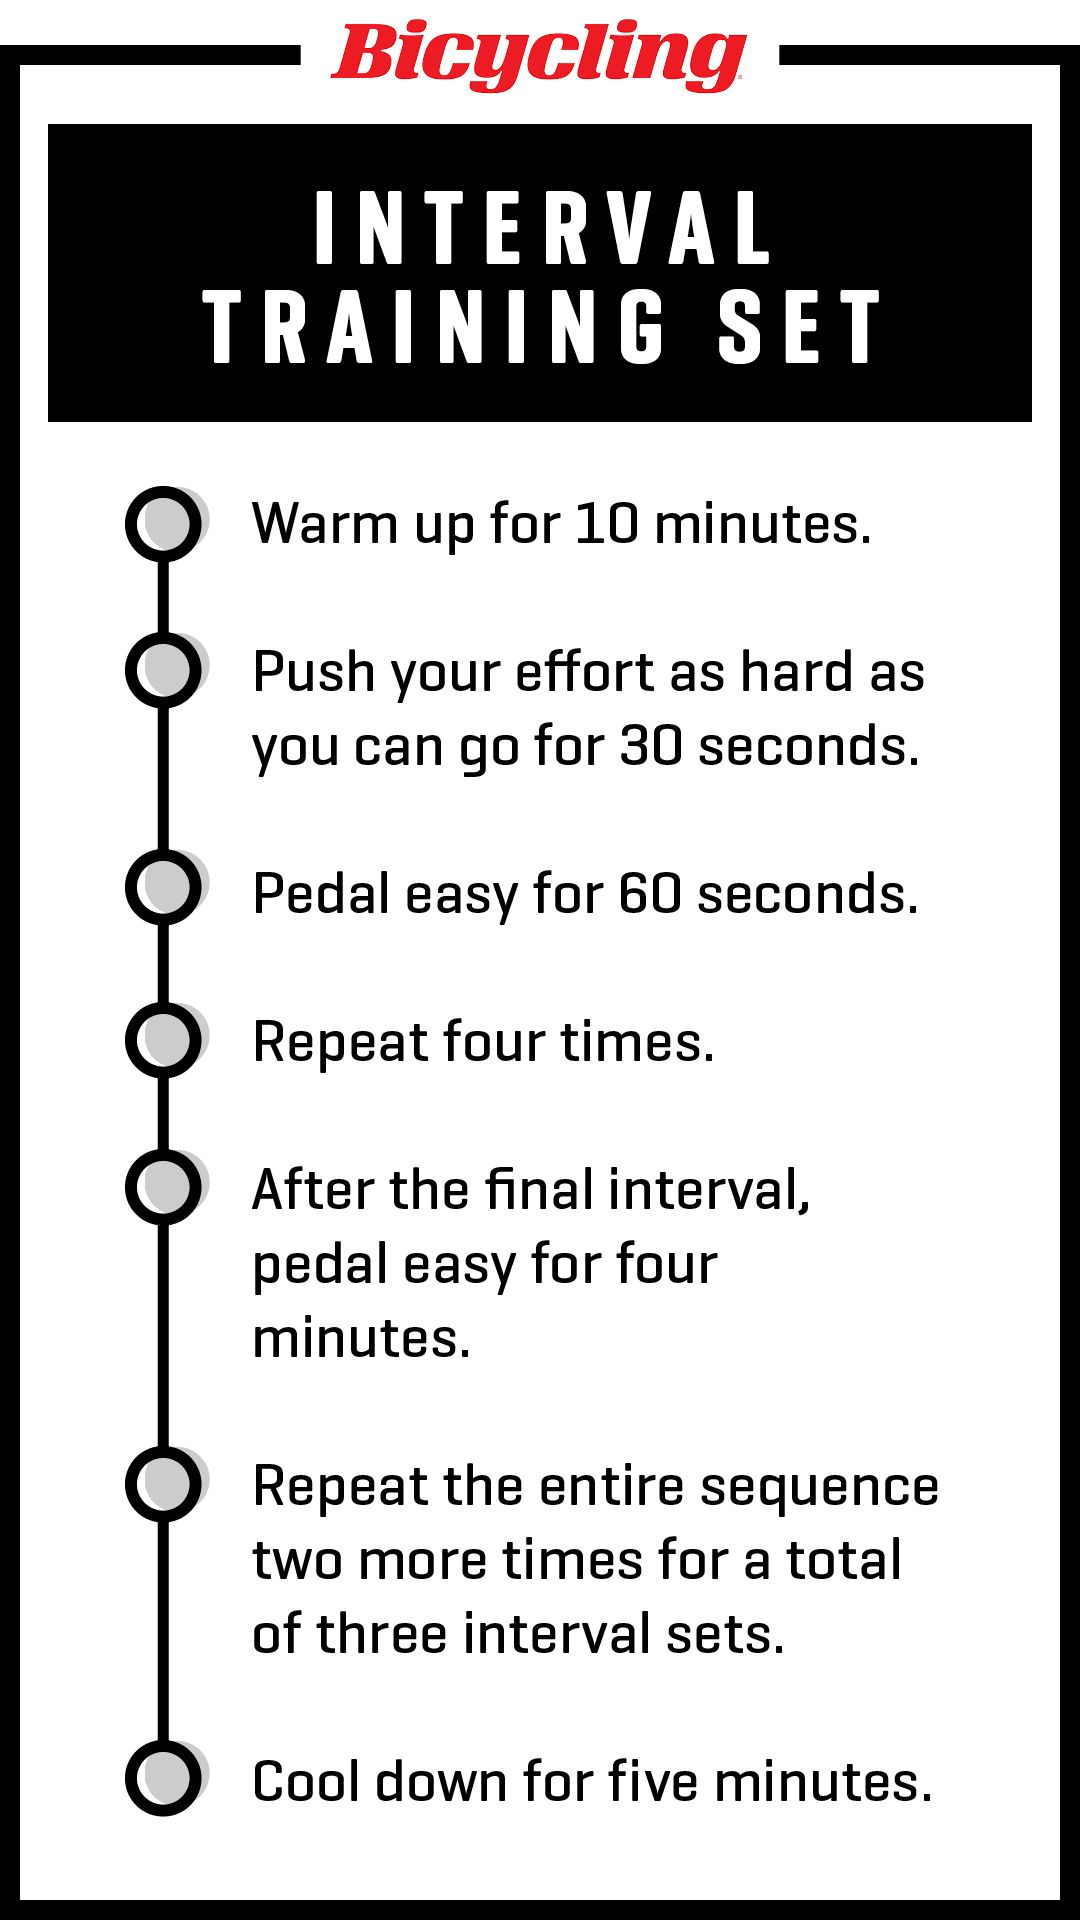 hiit workouts for cyclists best hiit workoutsCircuit Training 30 Minute Total Body Workout We Beat Fat #18